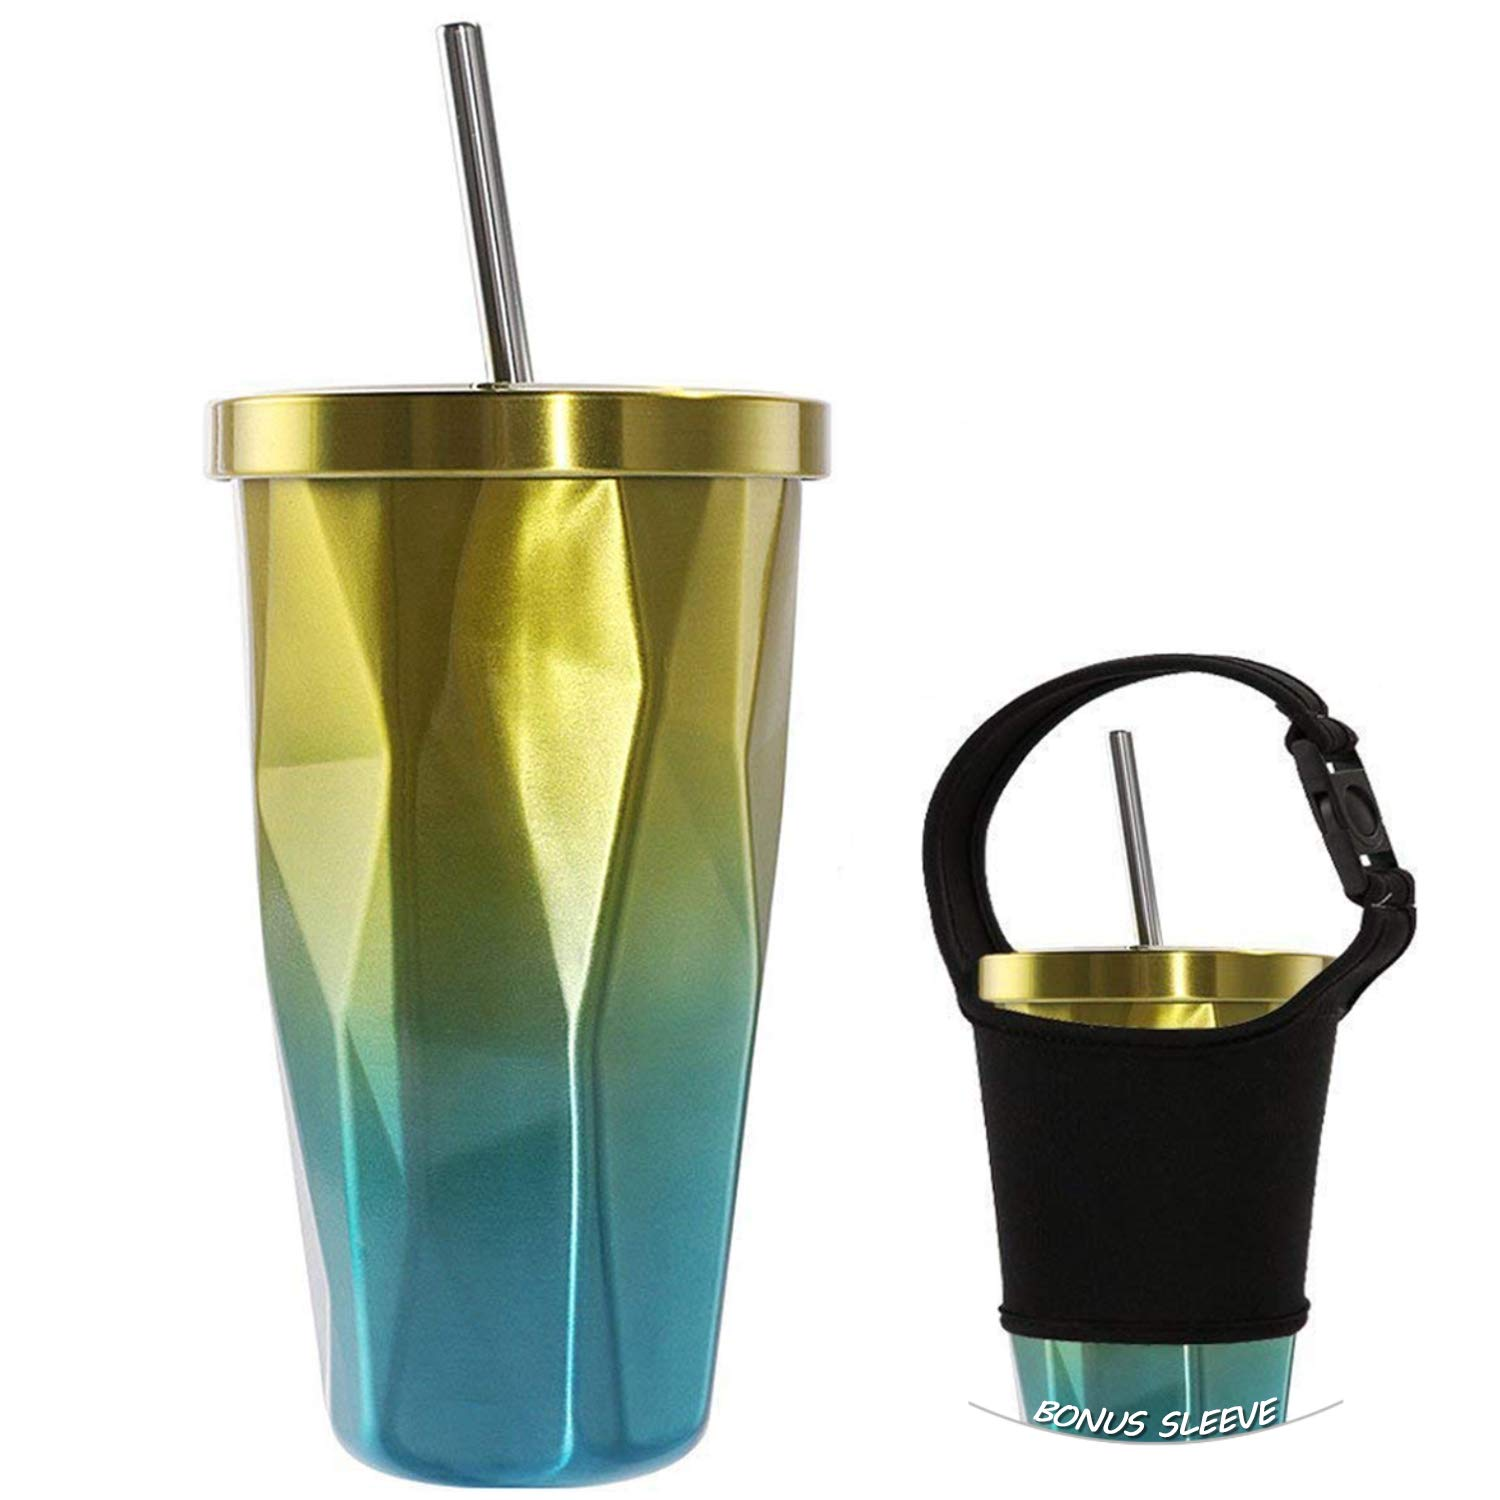 16oz Insulated Water Bottle Drinking Tumbler Coffee Mugs with Straw Double Wall Stainless Steel for Hot& Cold Drinks Irregular Shape with Lid XaoRy